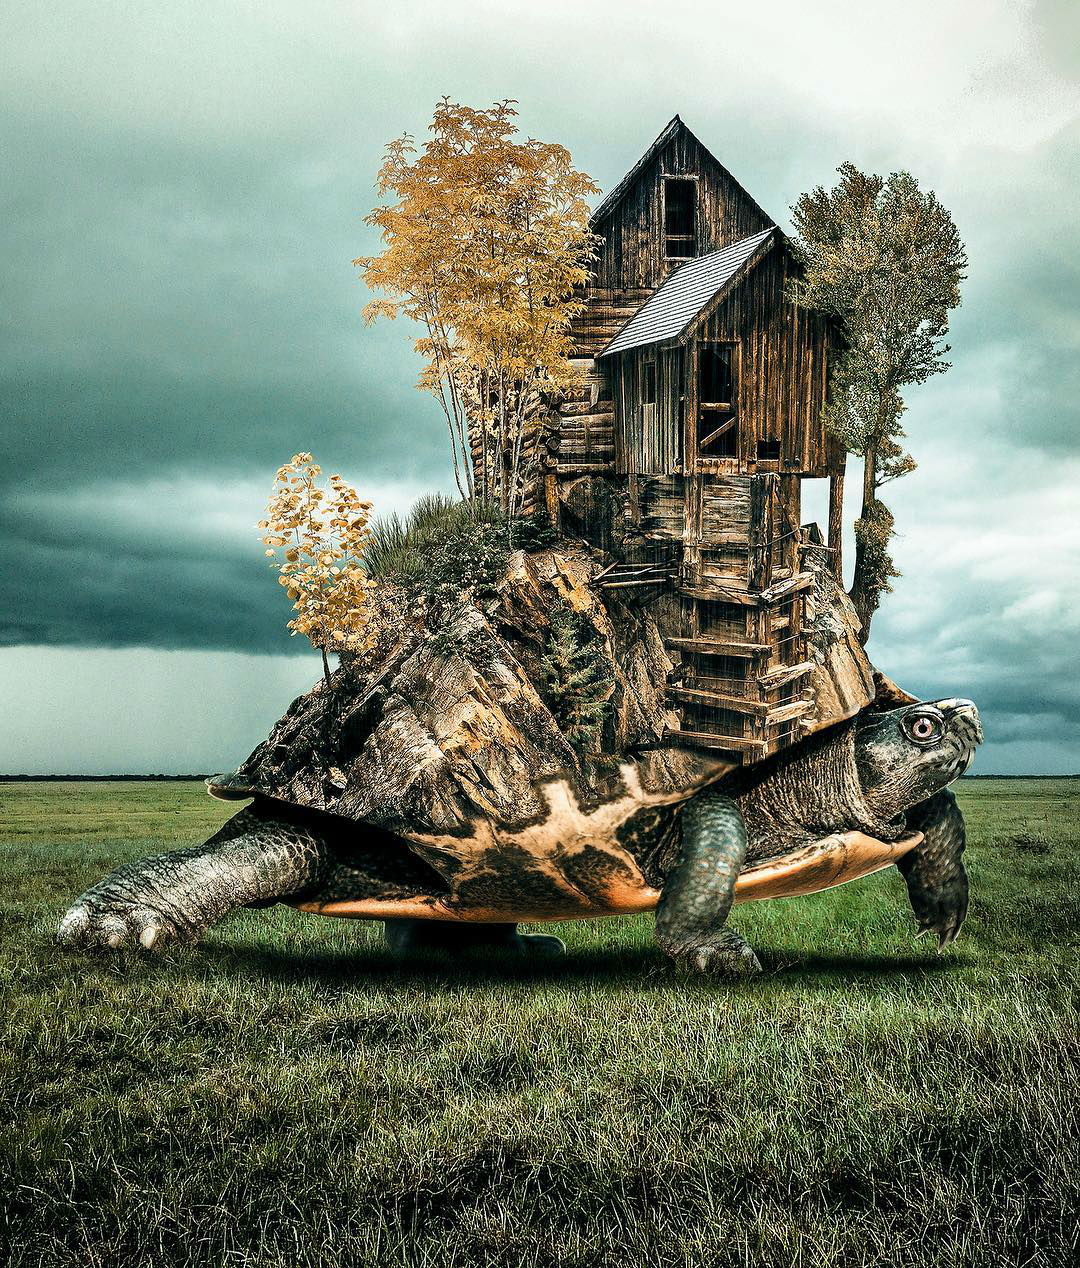 Surreal Photos That Will Leave You Speechless